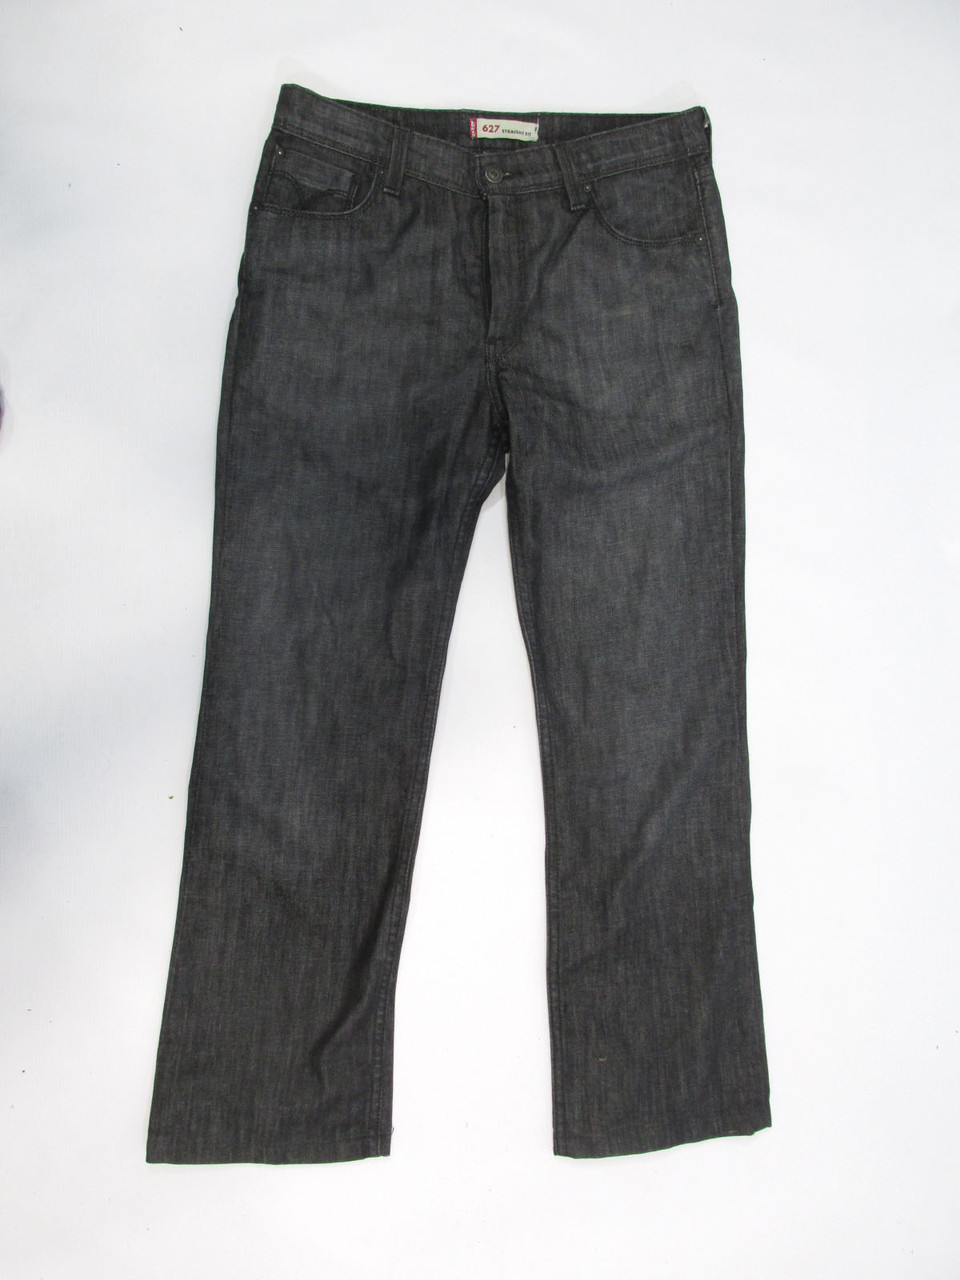 Джинсы LEVIS, 627 W31, Straight fit, Отл сост!